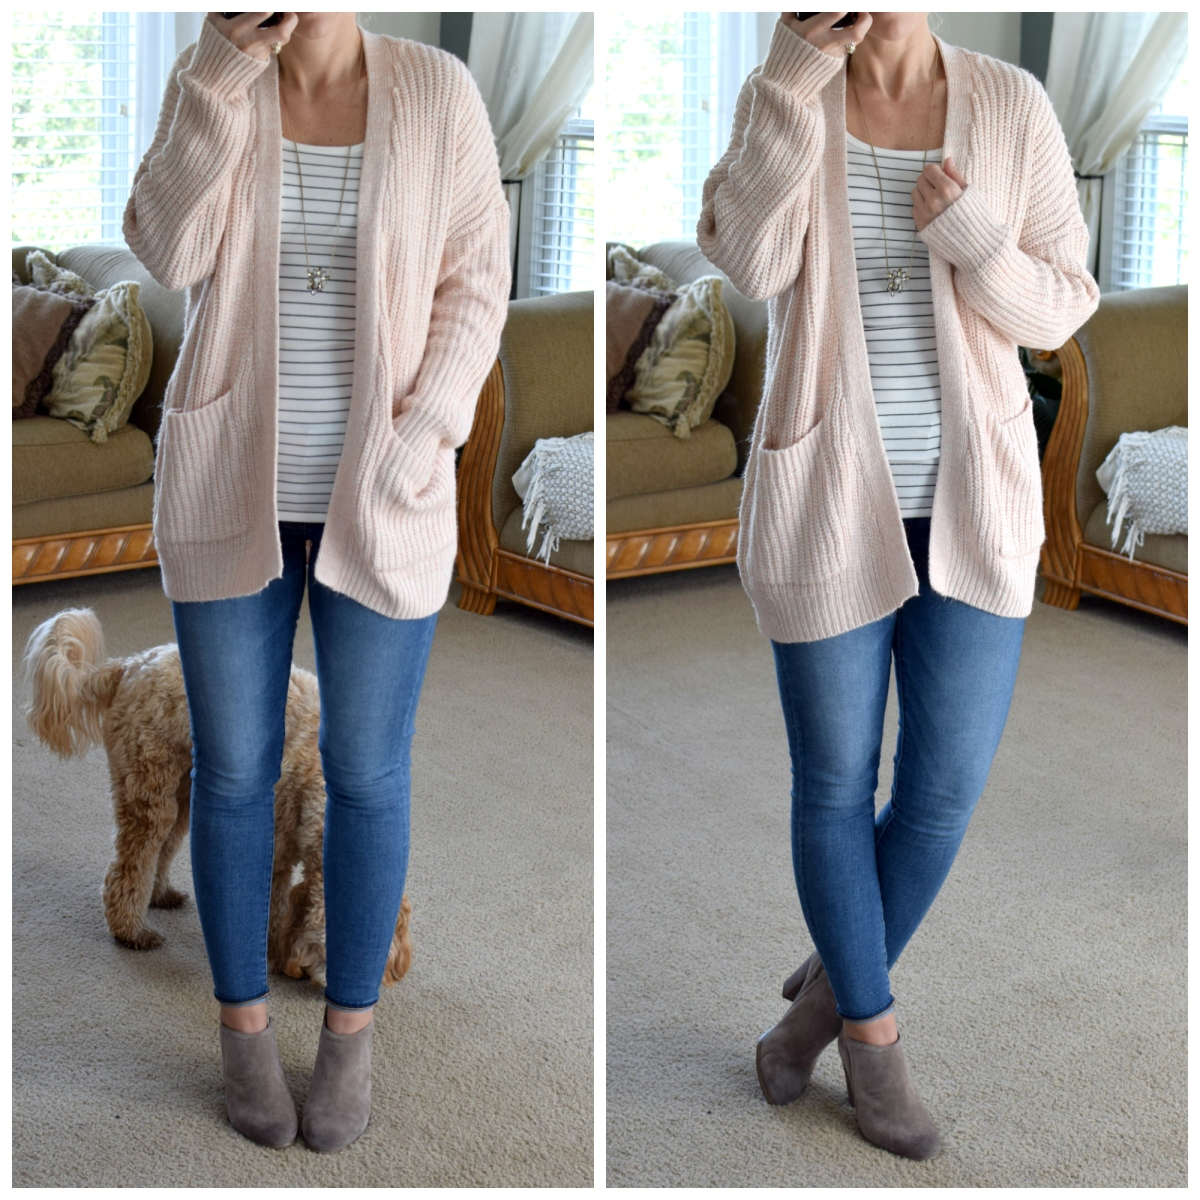 Oversied cozy cardigan and ankle booties |www.pearlsandsportsbras.com|